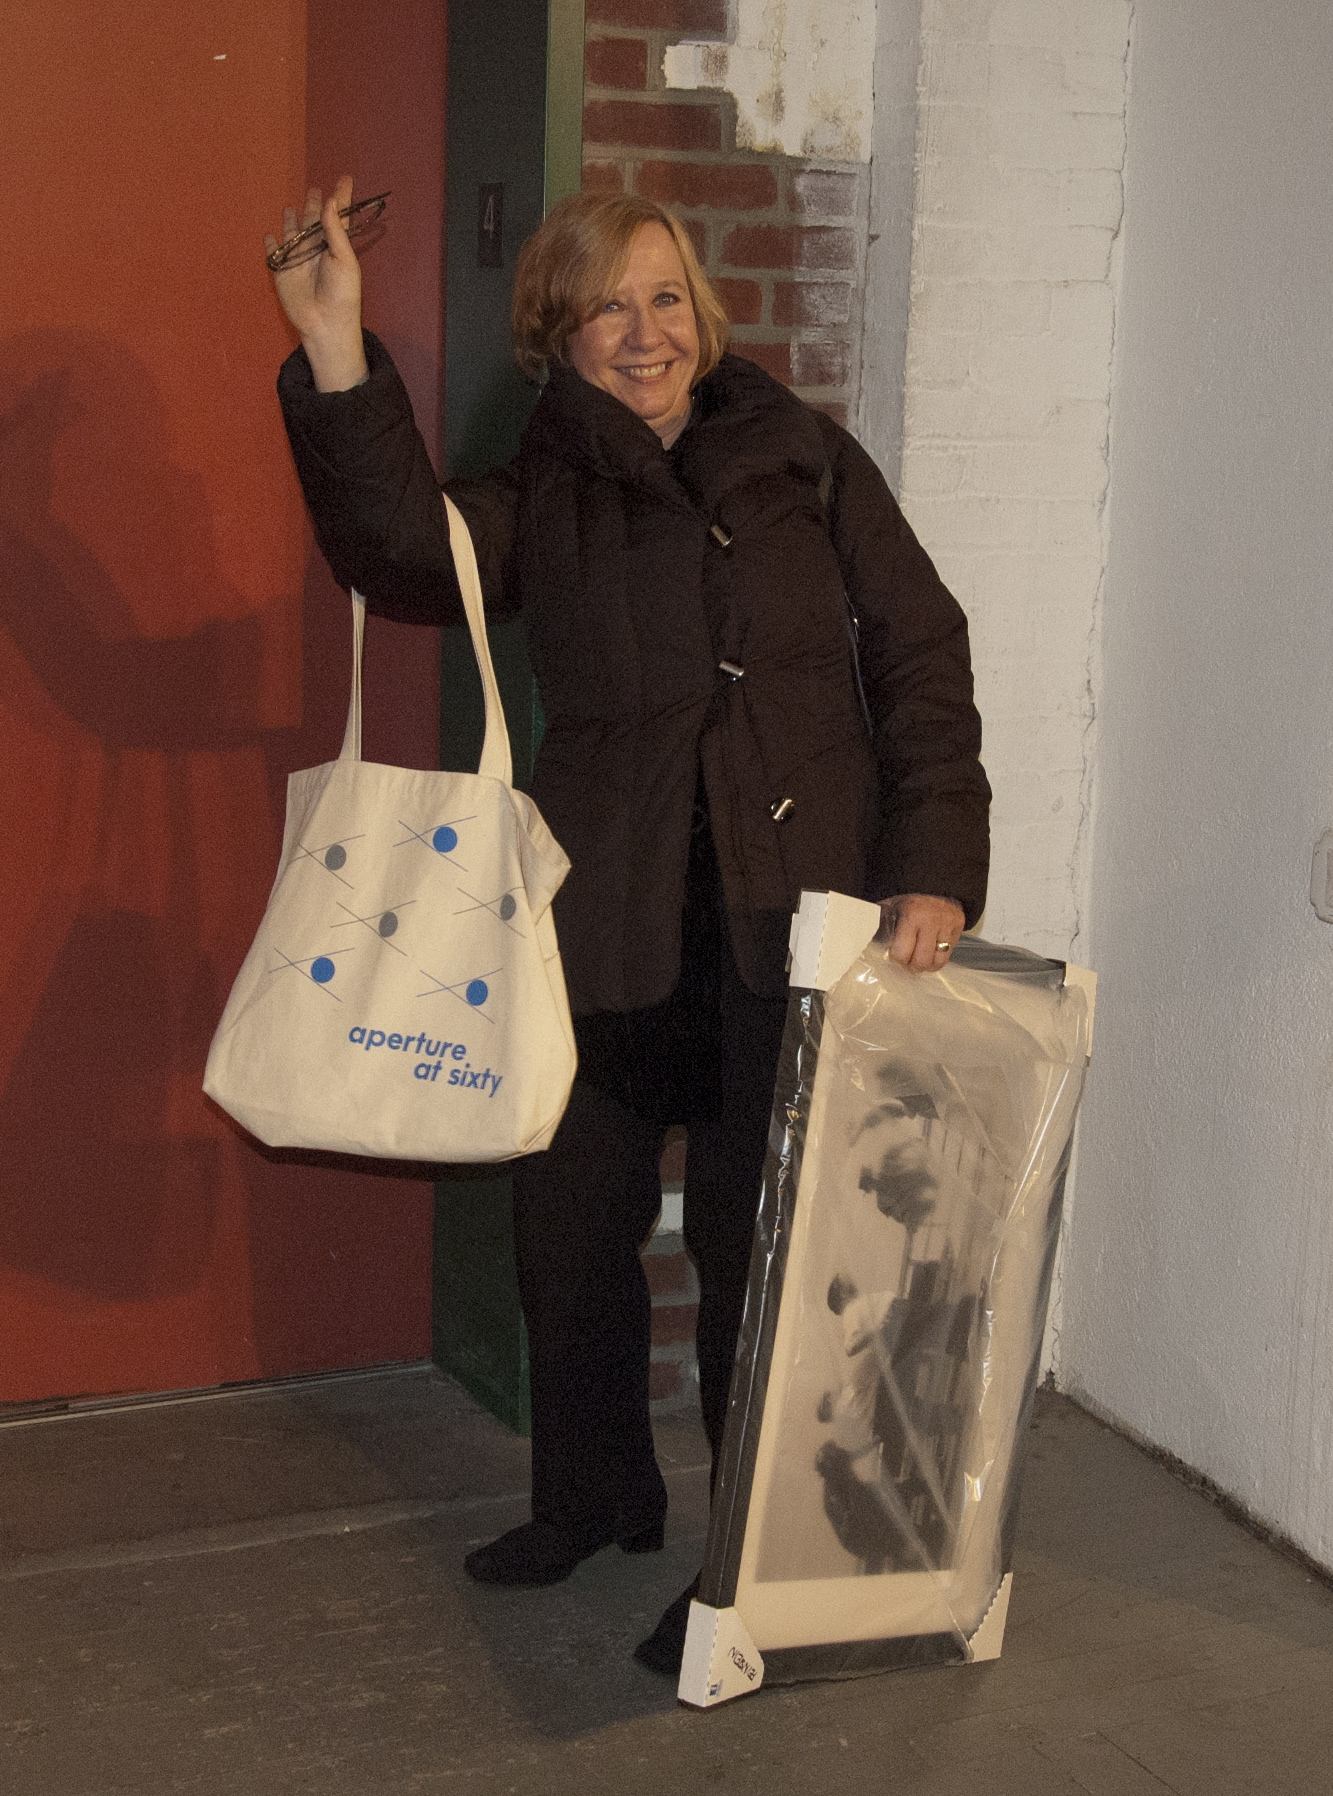 Our super special publicist, Andrea Smith, stays late into the evening and leaves with a framed print to support Hurricane Sandy relief efforts! Thank you Andrea!